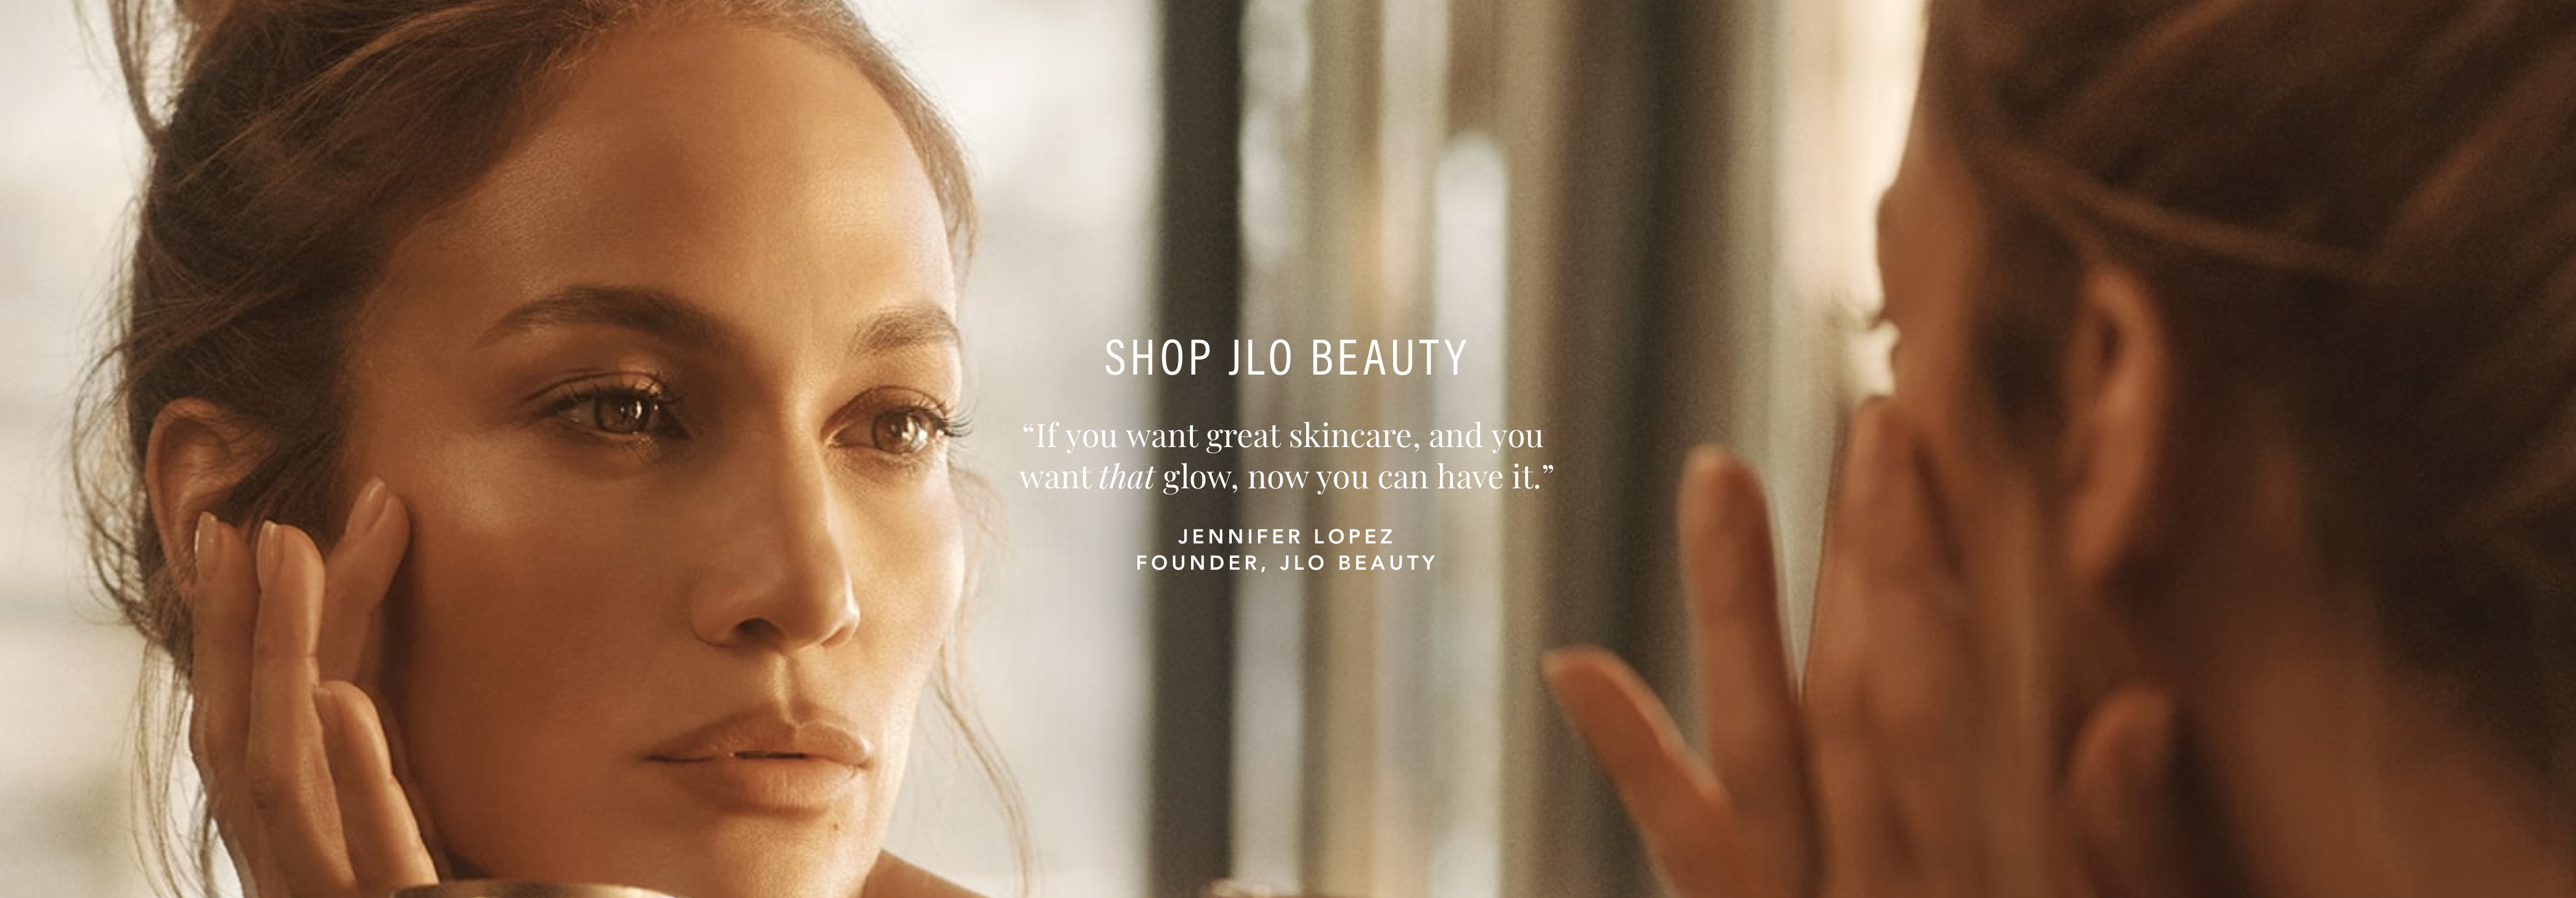 INTRODUCING JLO BEAUTY